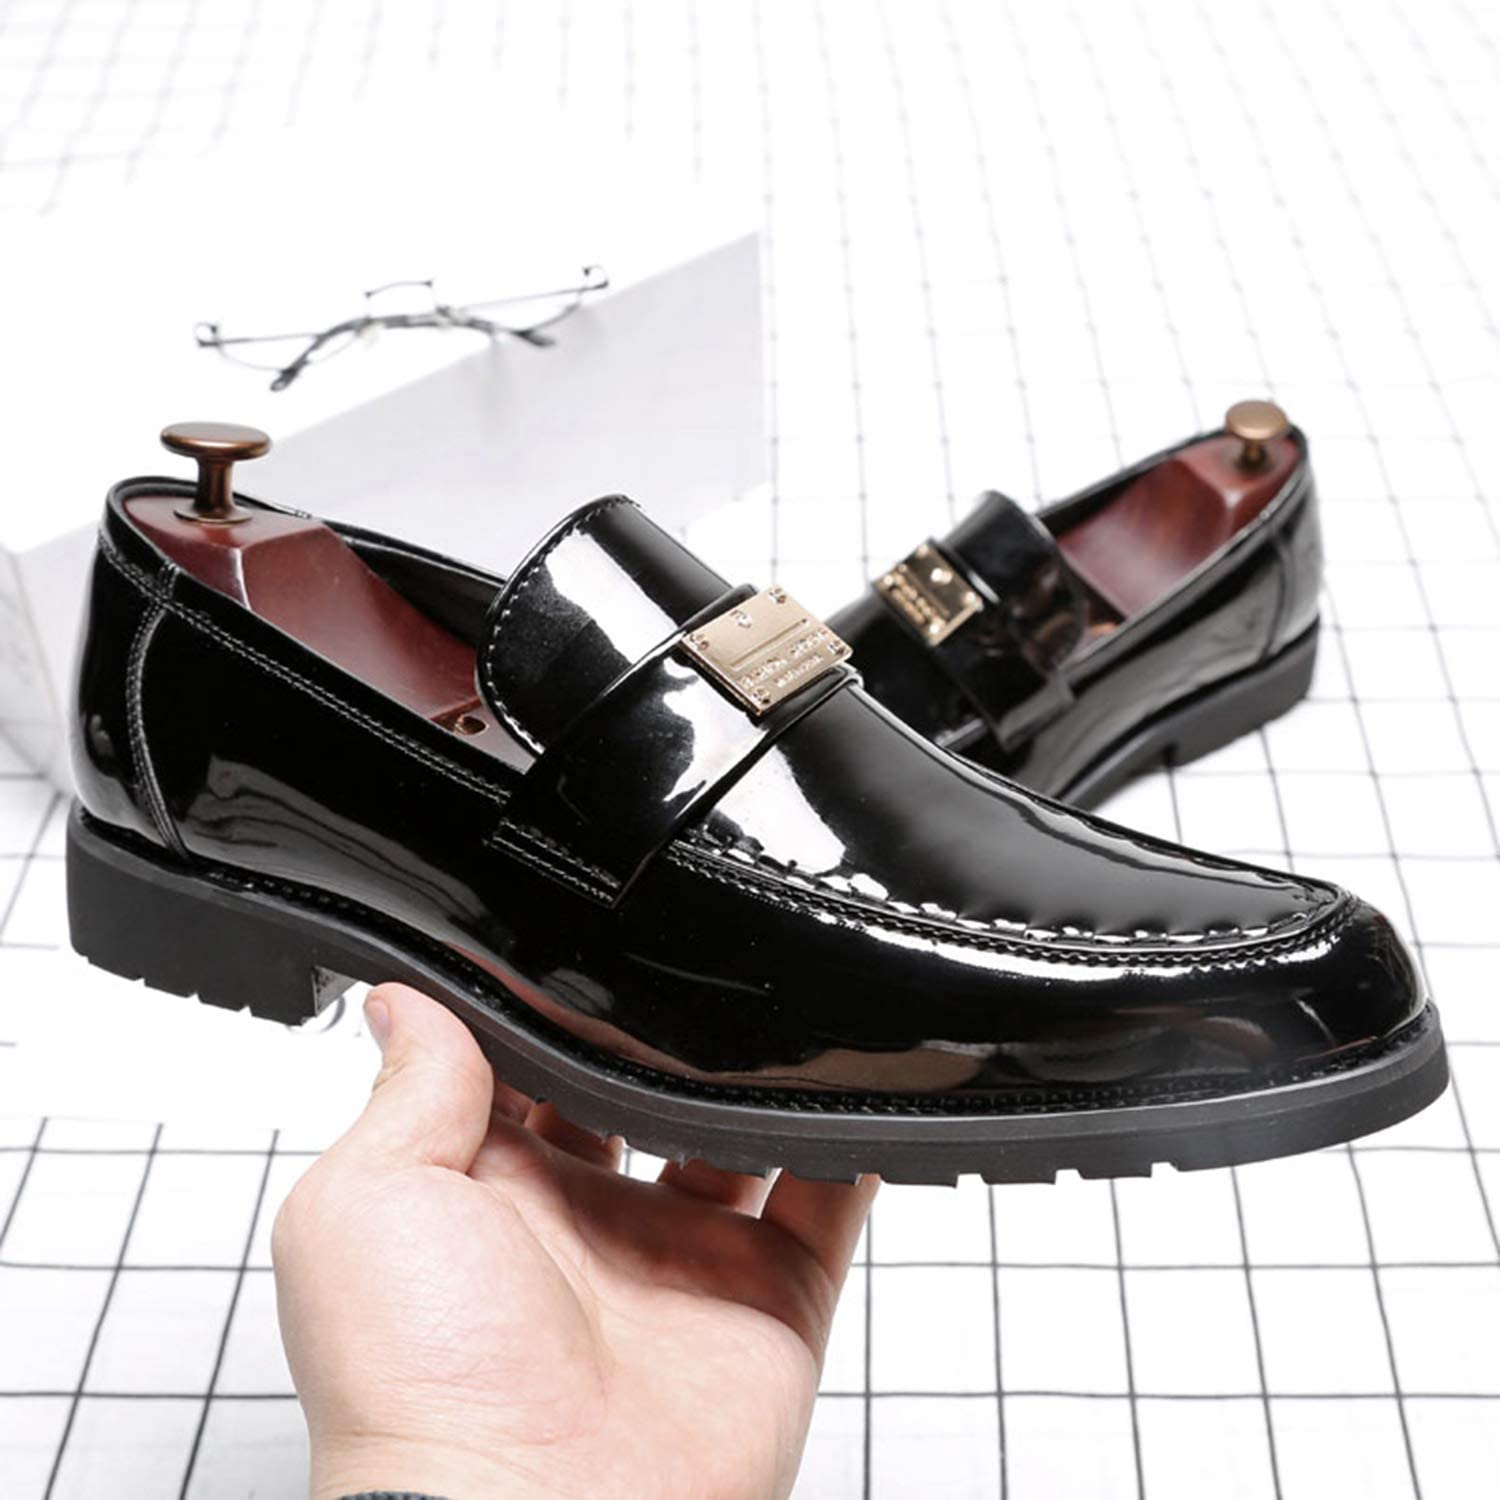 LEOED Men Loafer Glossy Leather Fashion Meatllic Smoking Slipper Pointed Toe Low Heel Striking Shoes Wedding Party Shoes Dress Shoes Size 6-13